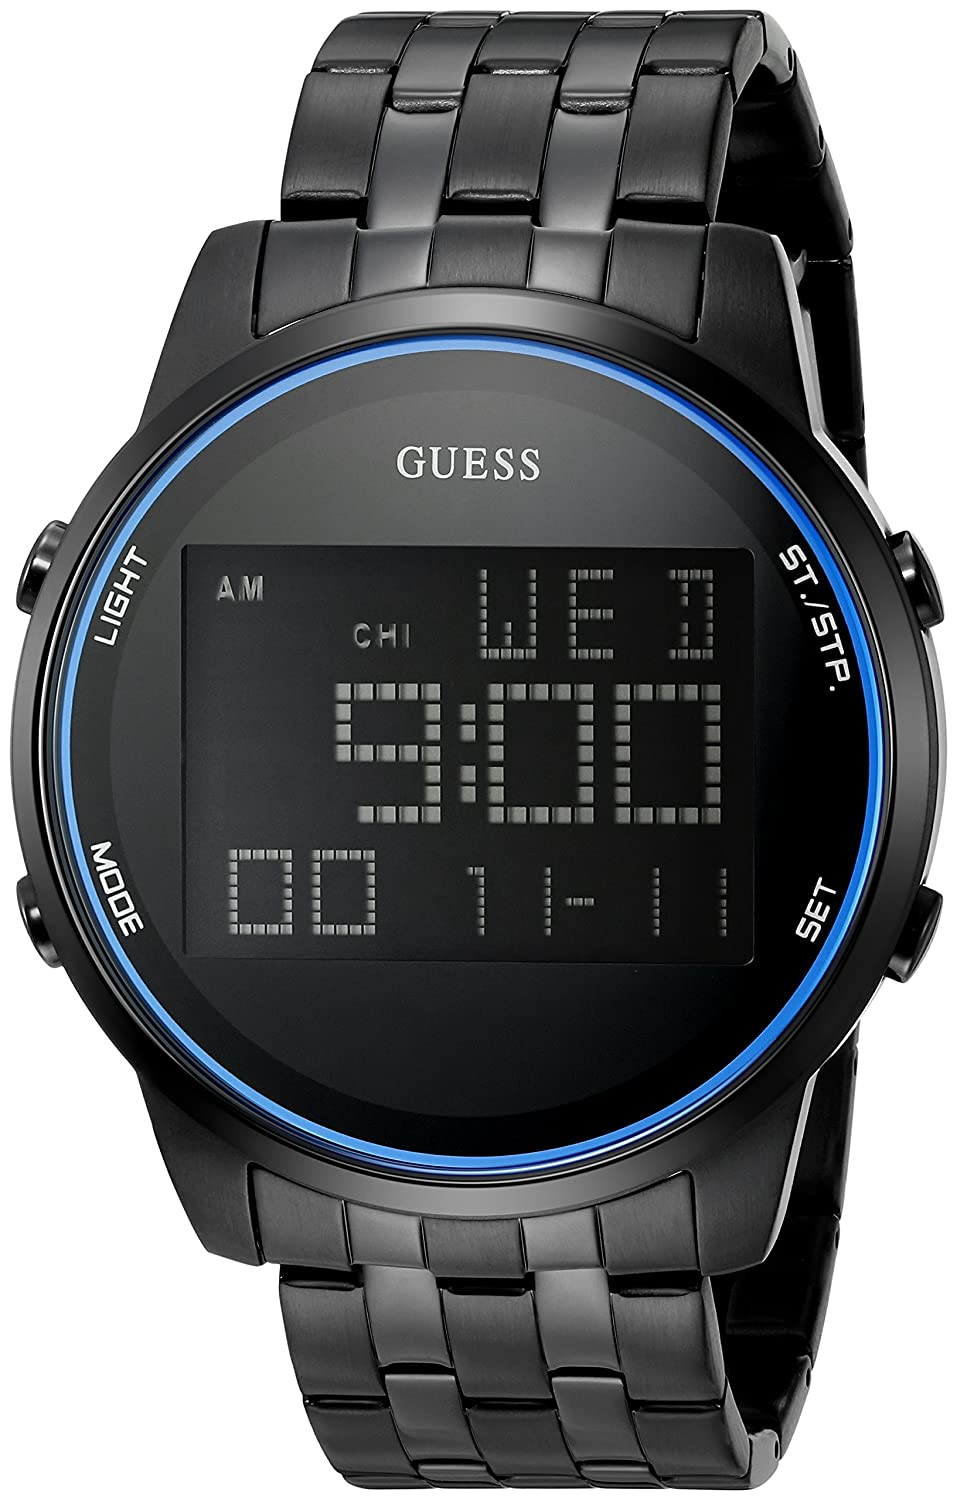 Amazon.com: GUESS Mens U0786G2 Trendy Black Stainless Steel Watch with Digital Dial and Black Pilot Buckle: Watches